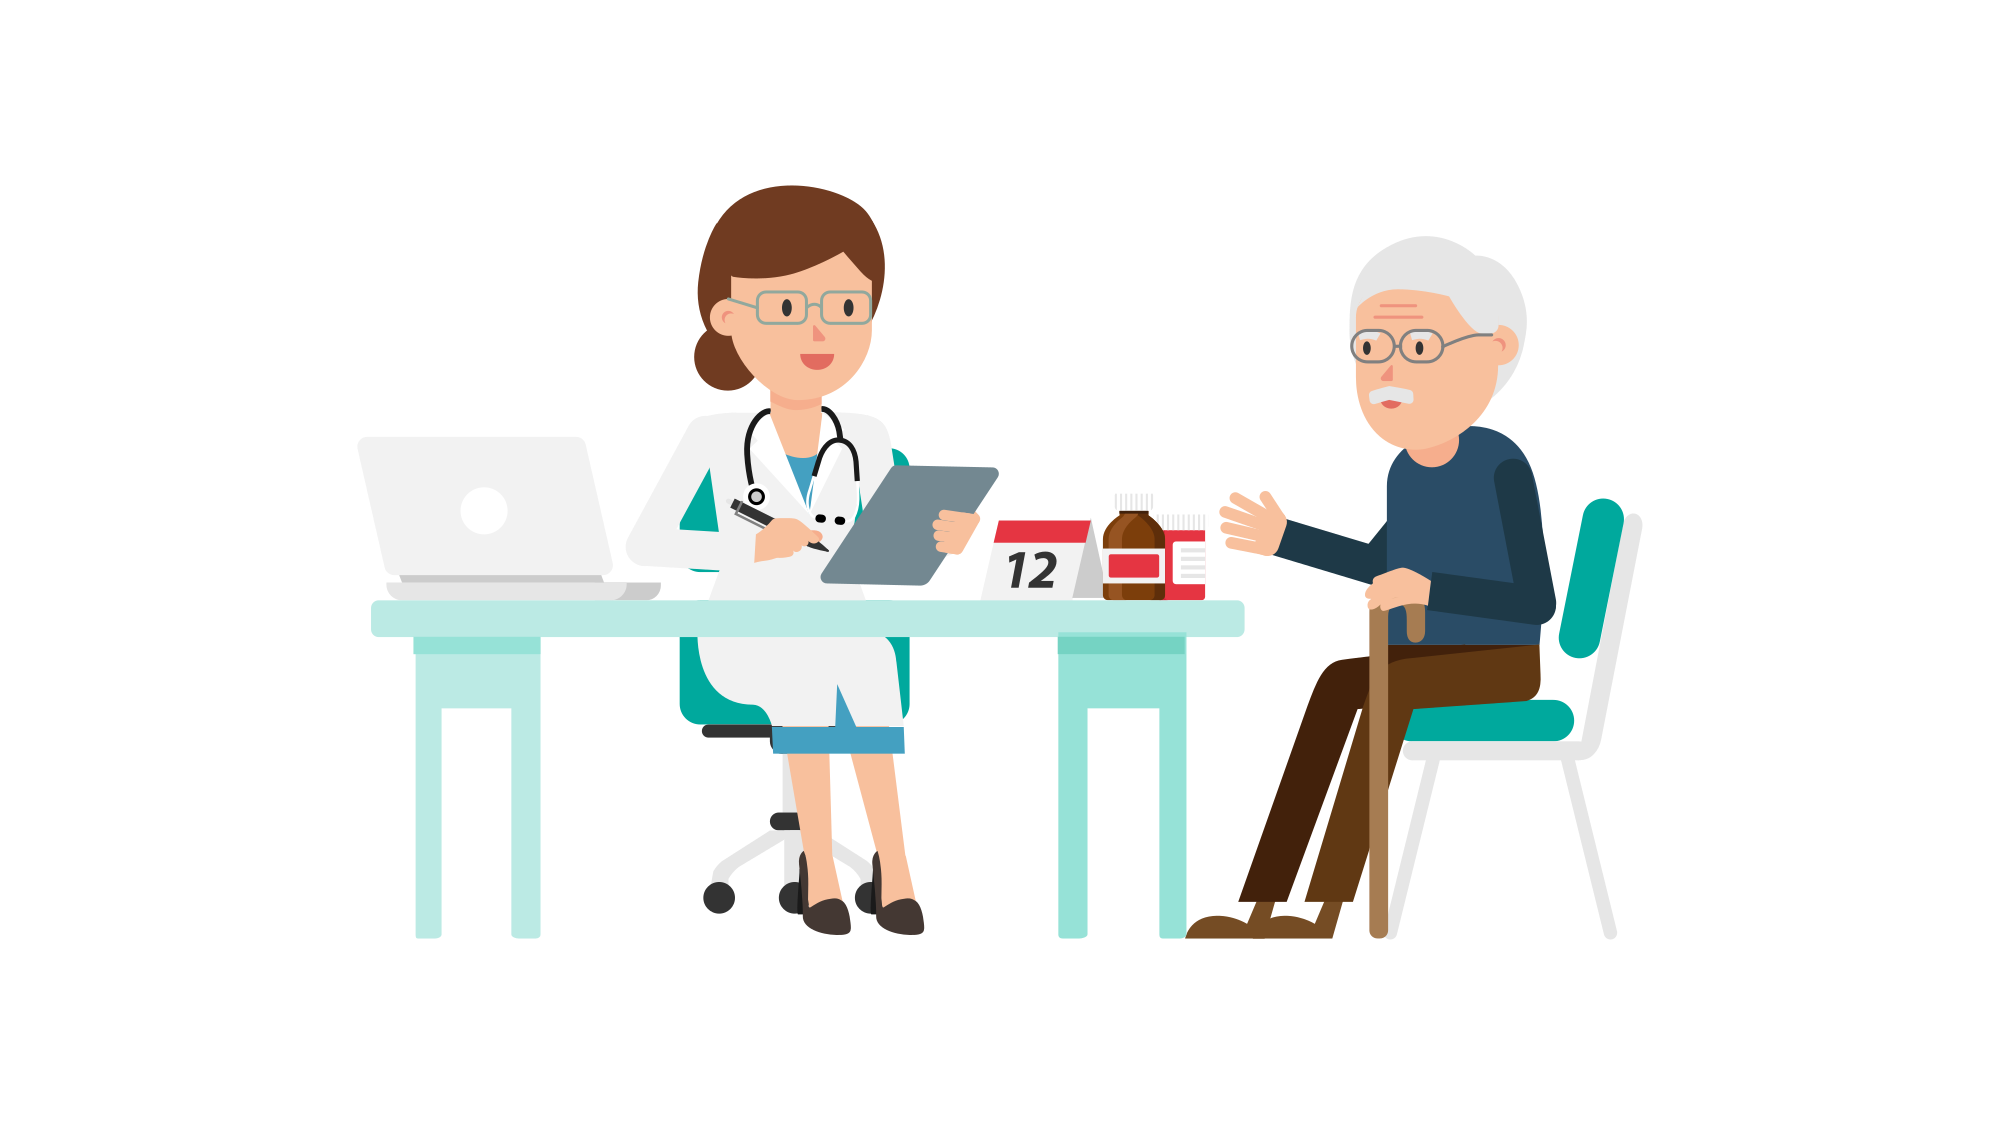 Doctor sitting png. File with patient cartoon